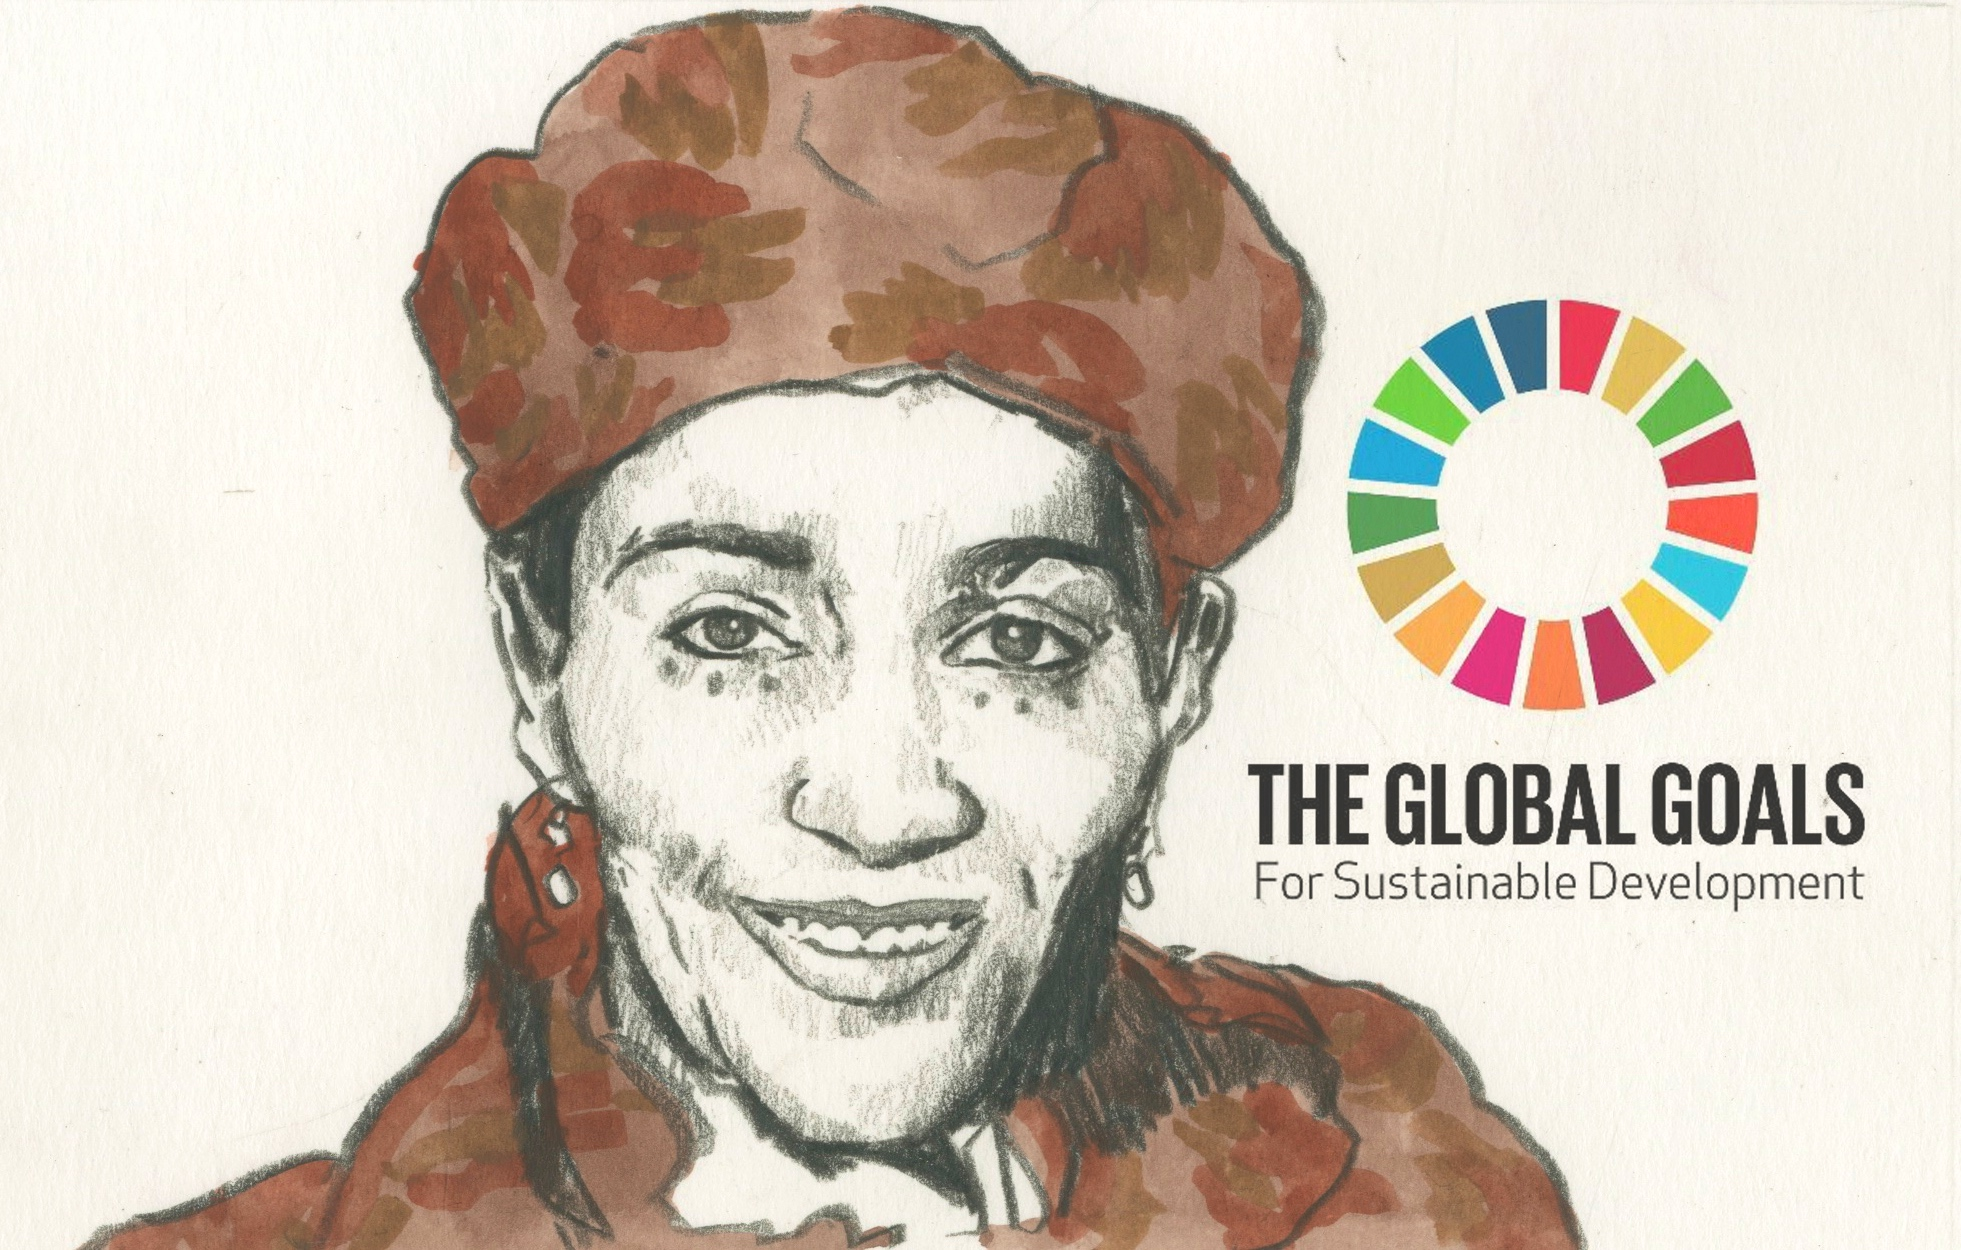 26/09/15 The Somali-Kenyan lawyer Amina Mohammed, 54, has served as a top United Nations diplomat. She is currently responsible for corralling countries to commit to an ambitious set of global development goals, meant to save the planet and its most vulnerable people. Known as the Sustainable Development Goals, or Agenda 2030 after the deadline for meeting them, or often just as the Global Goals, they were adopted this week